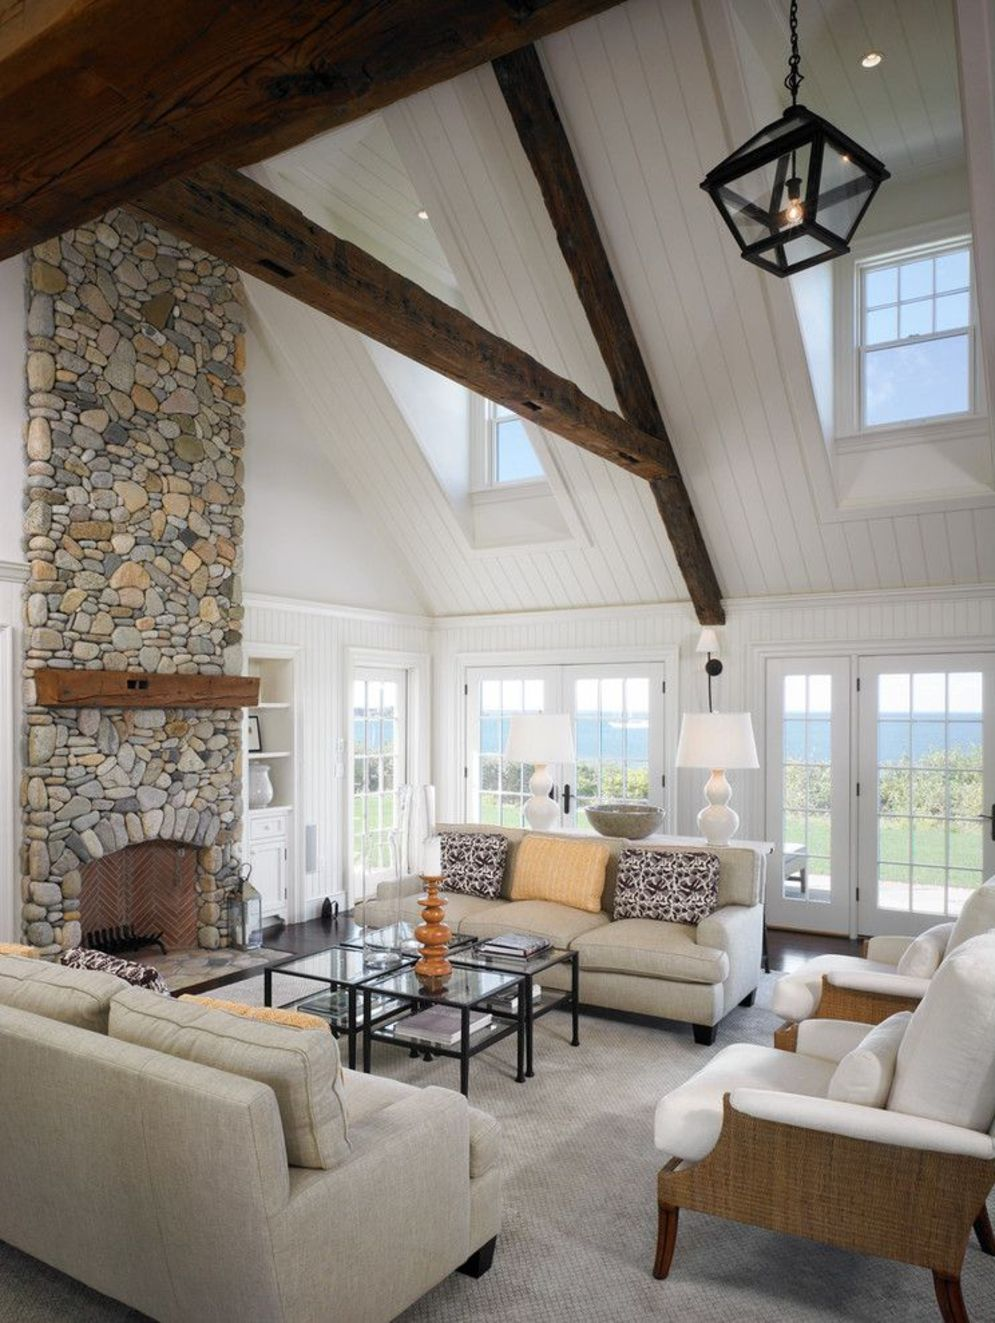 Classic home style with cathedral ceiling which looks gorgeous and grand along with classy interior taste Image 18